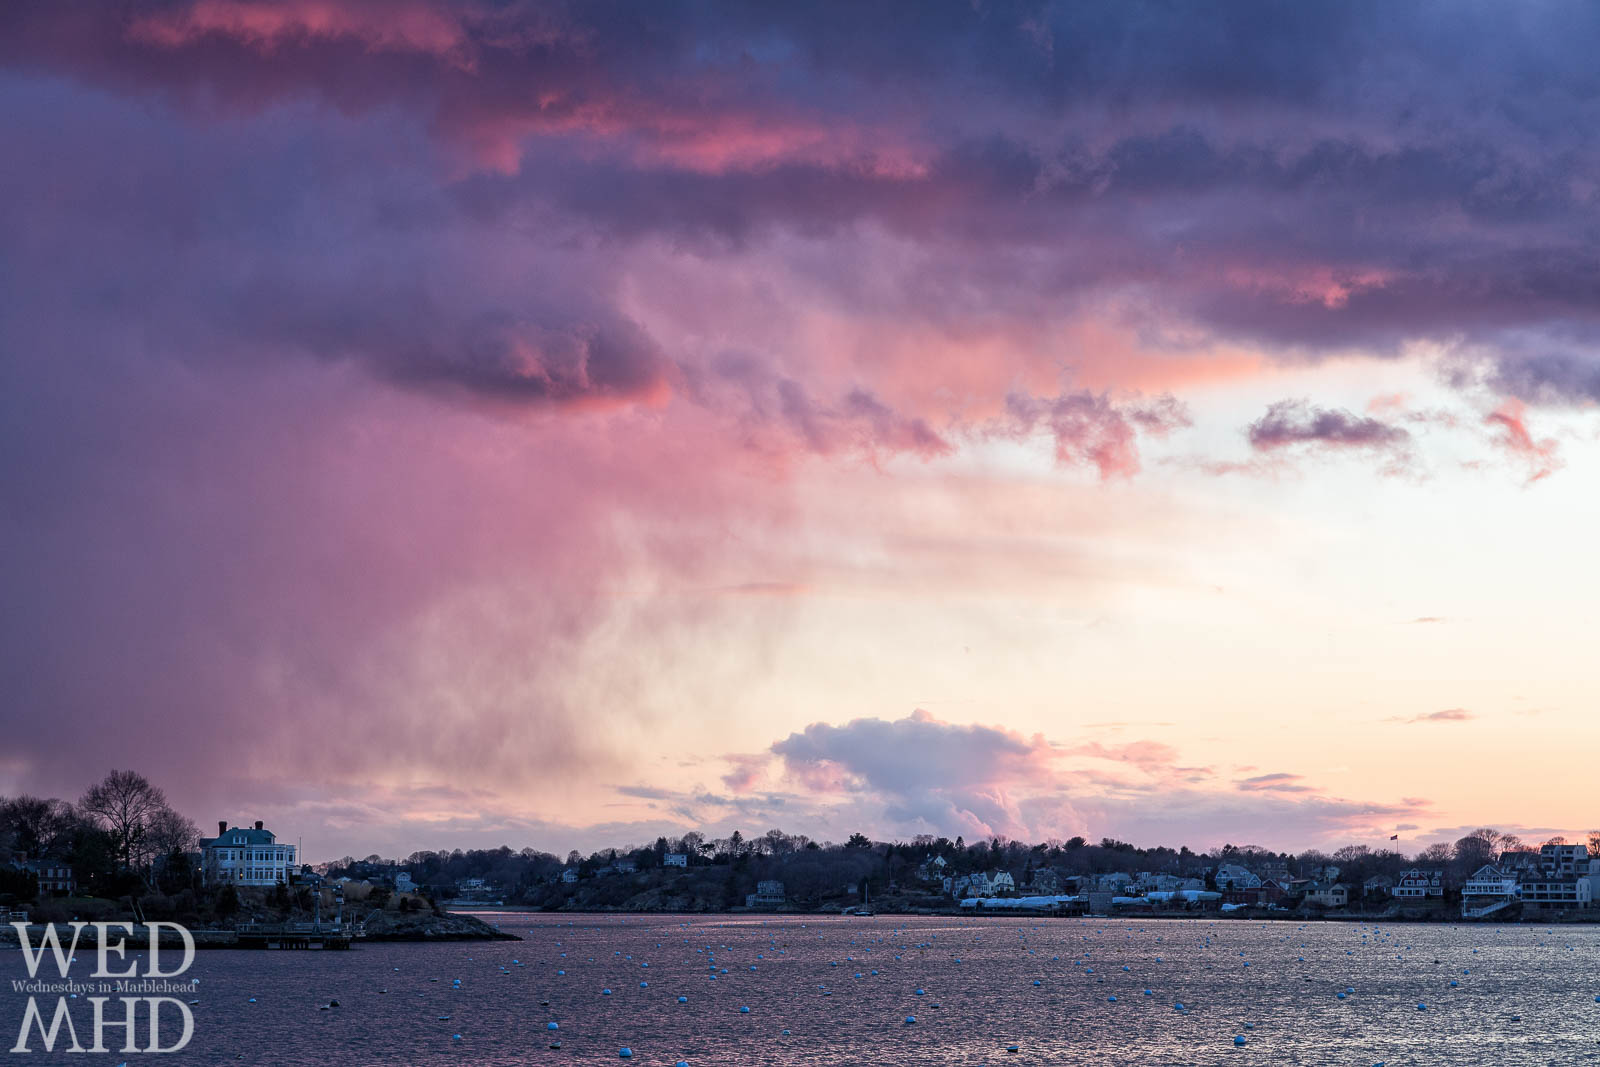 Pink clouds mix with a purple haze as a corker of a Marblehead sunset takes shape over a house on the neck